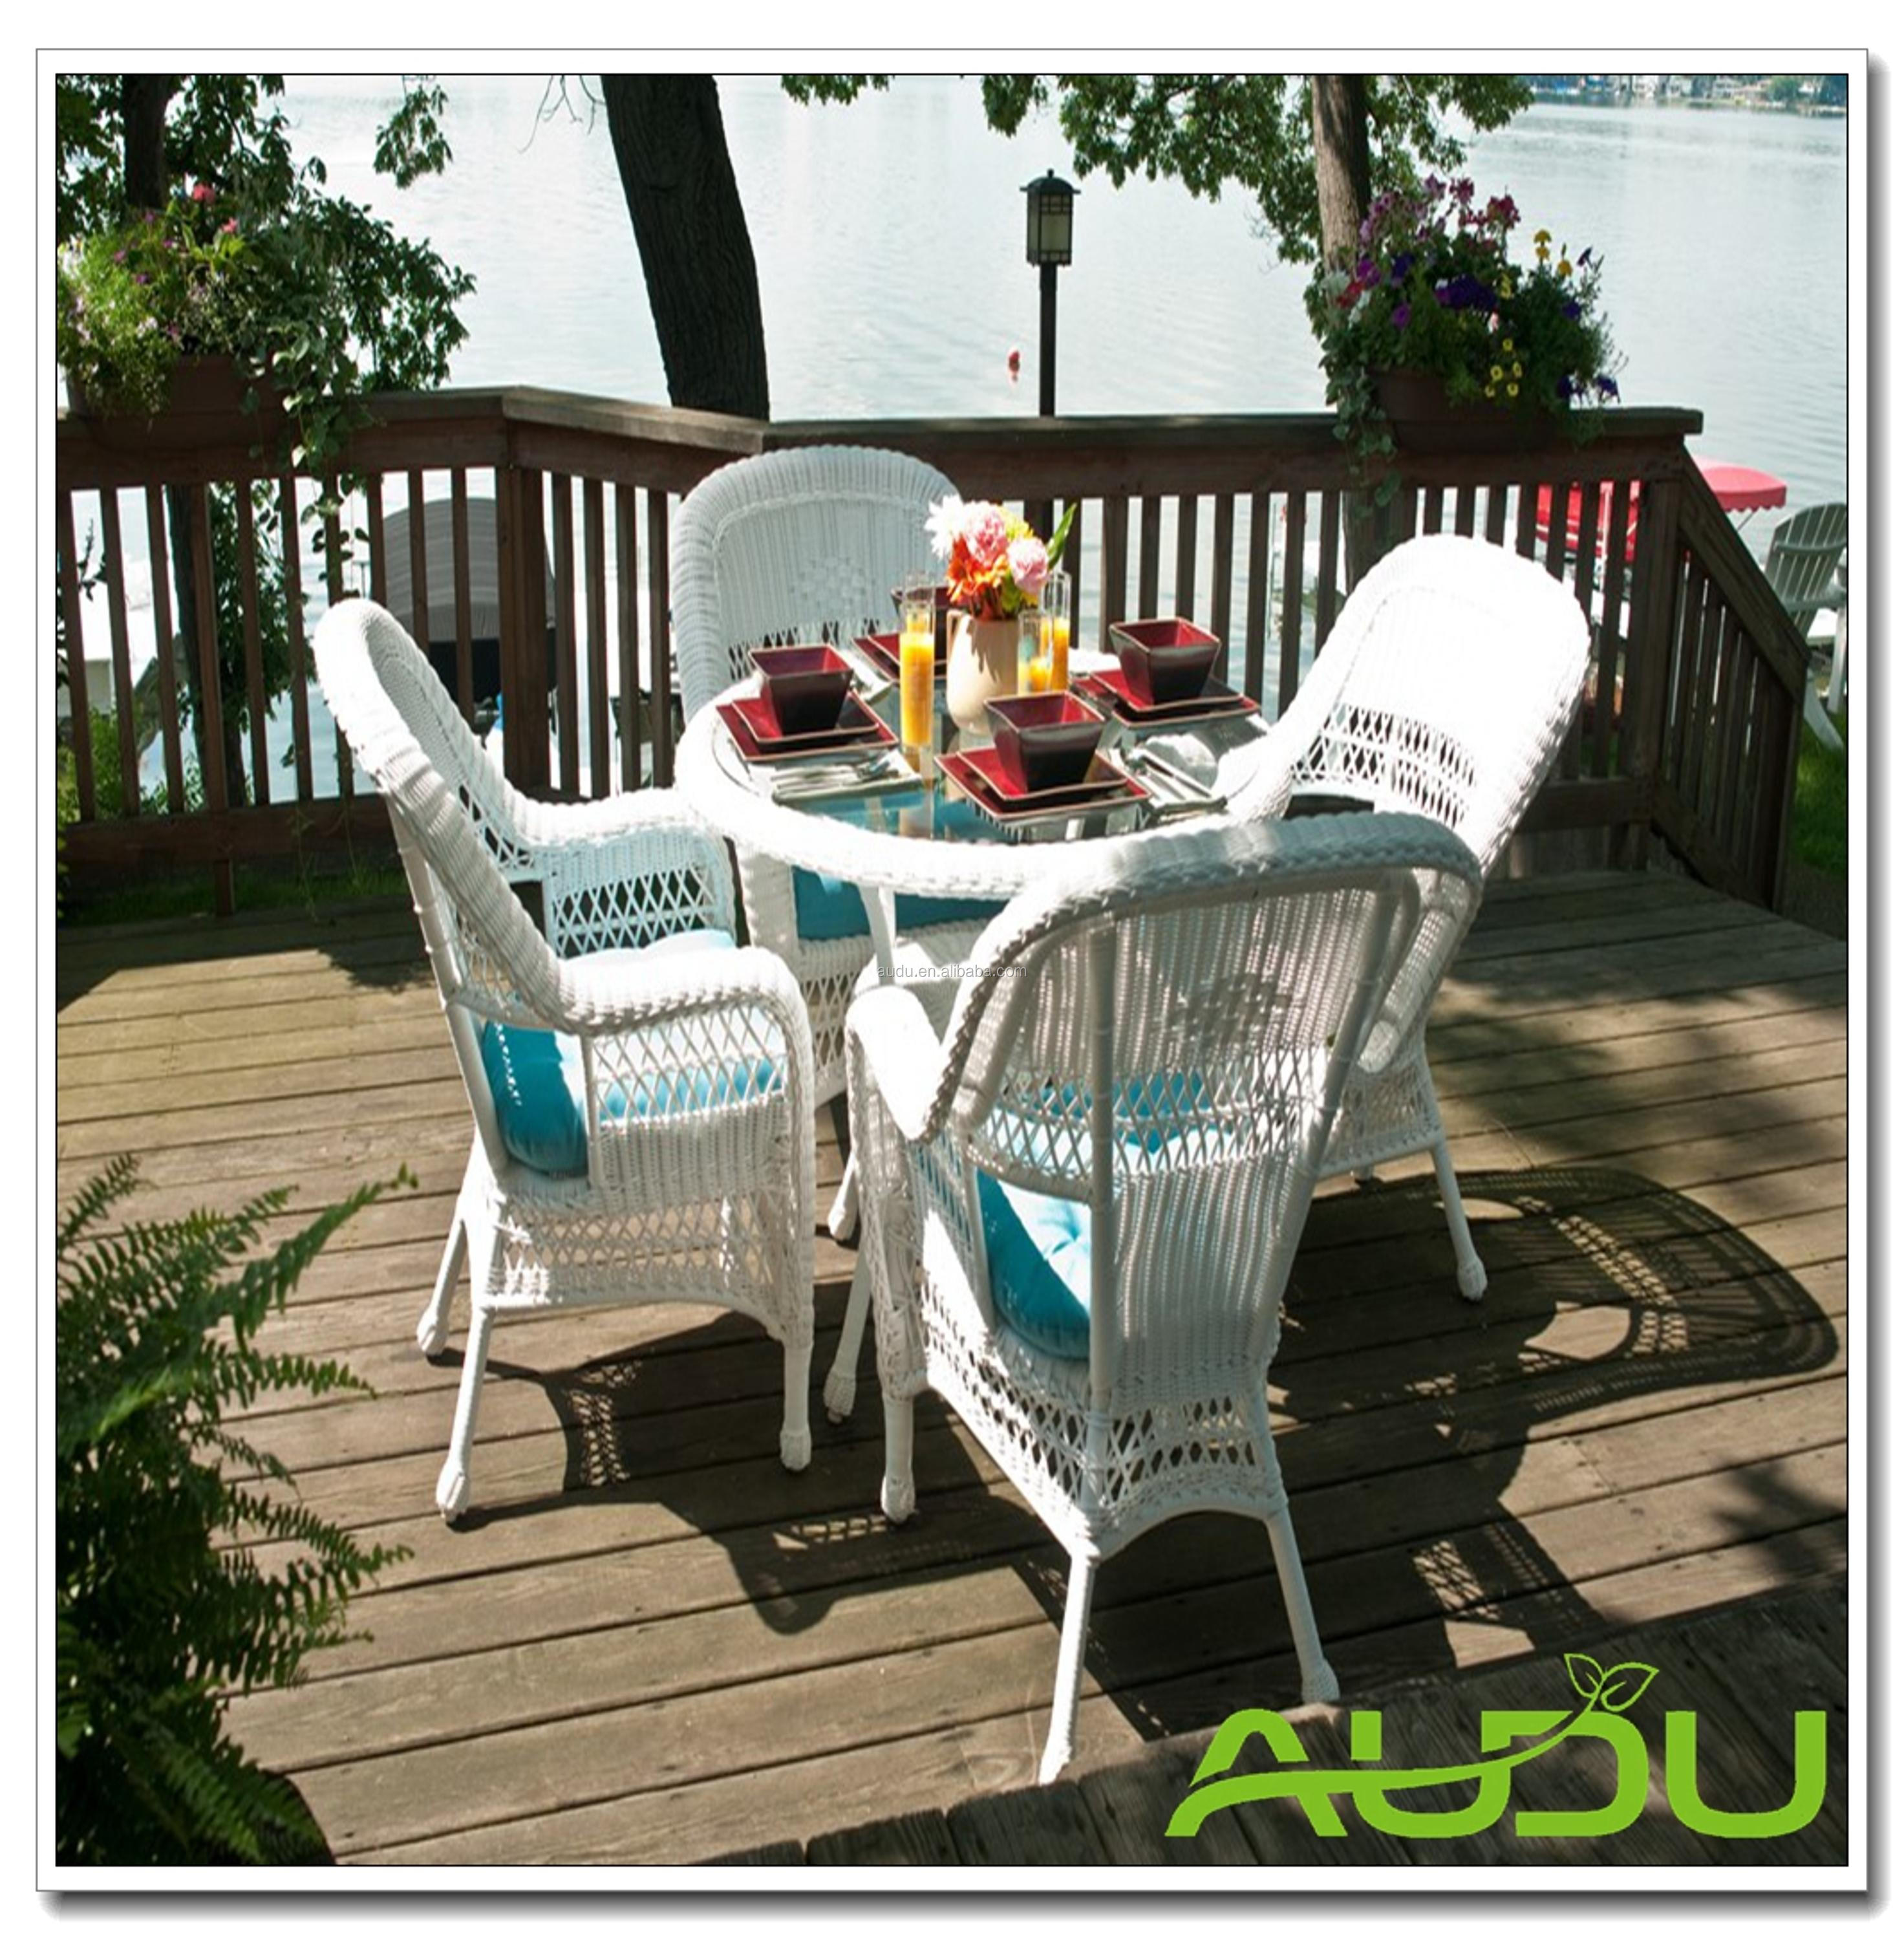 Audu White Rocking Chairs Roses Outdoor Furniture Buy Roses Outdoor Furniture White Rattan Outdoor Furniture White Resin Outdoor Furniture Product On Alibaba Com